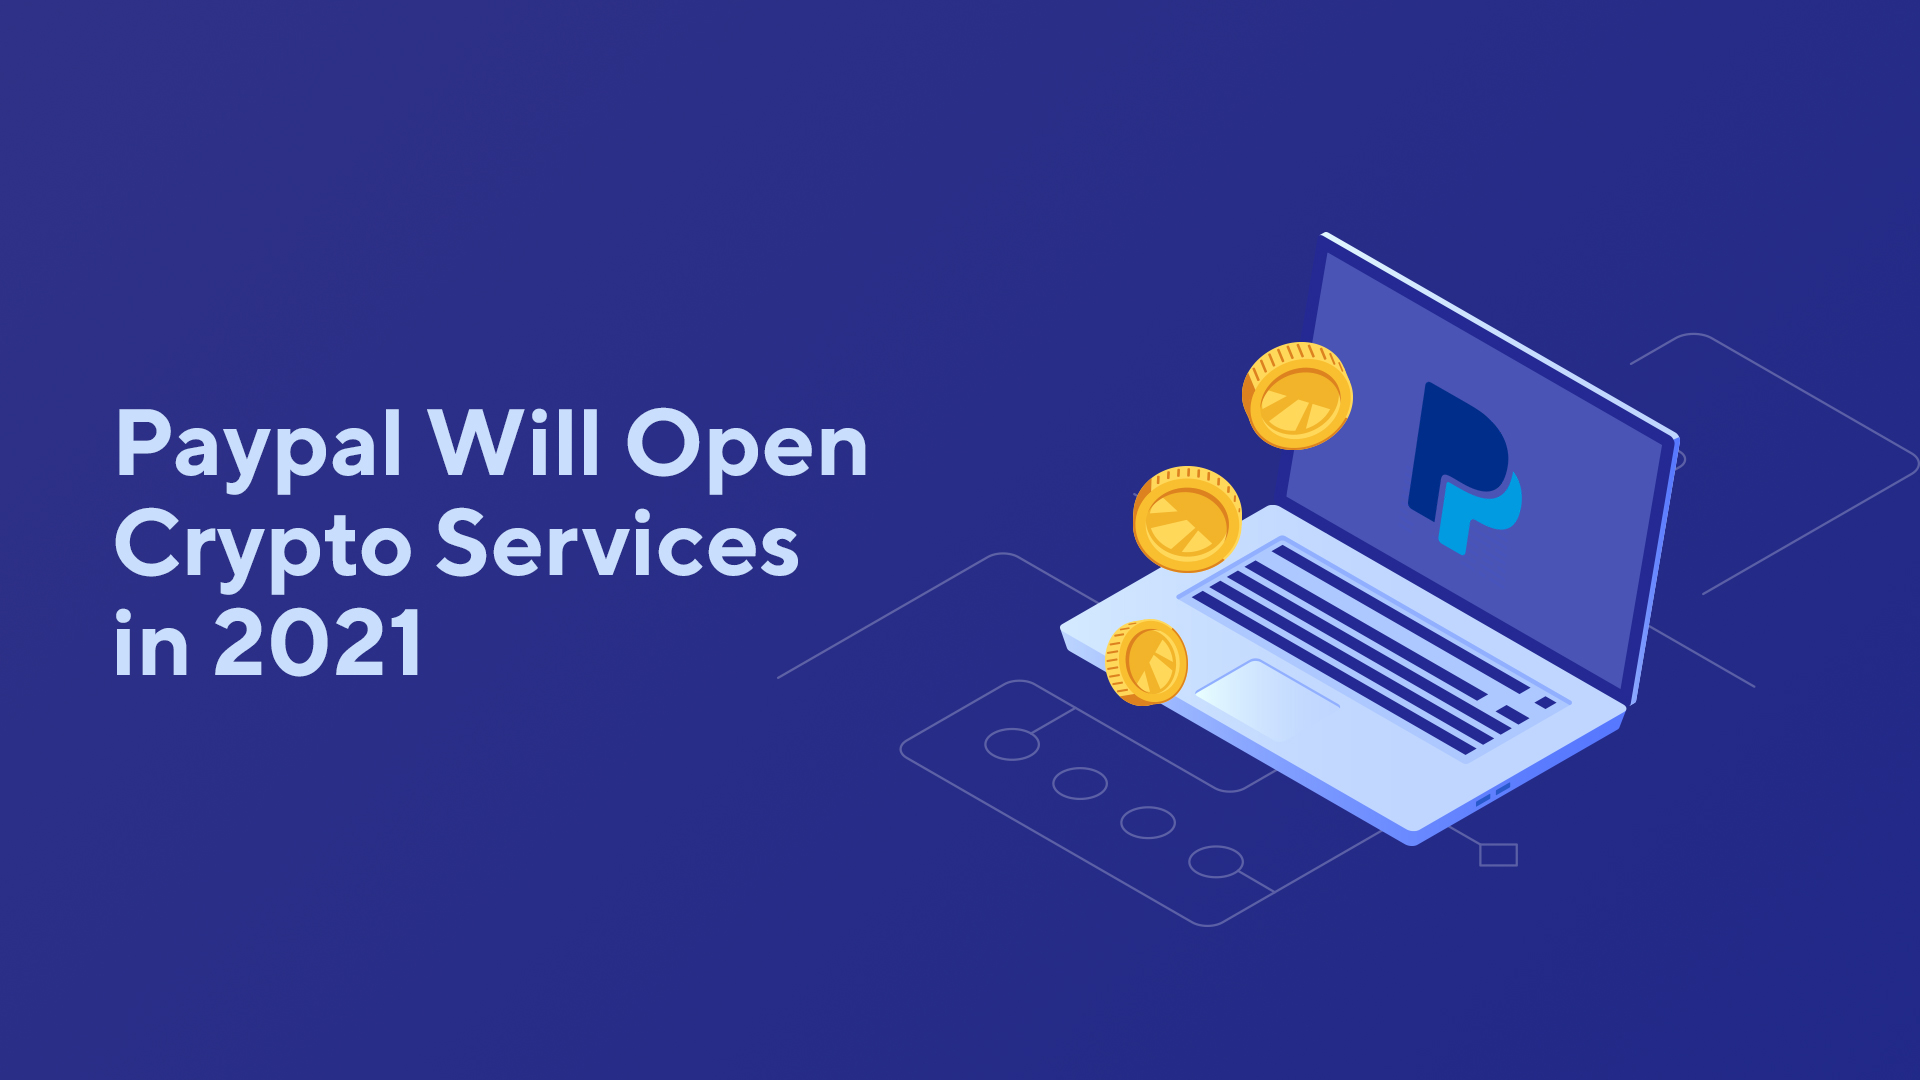 Paypal Will Open Crypto Services in 2021